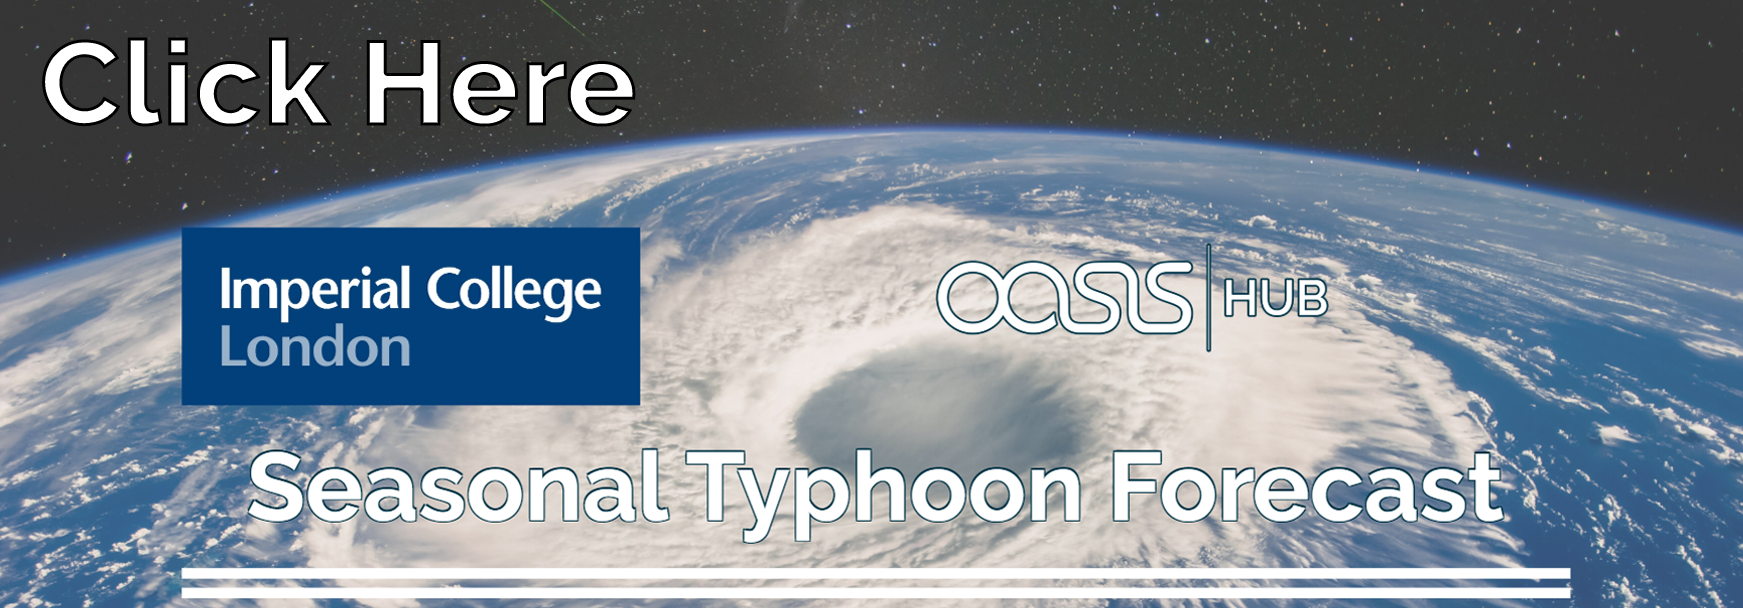 Seasonal Typhoon Forecast